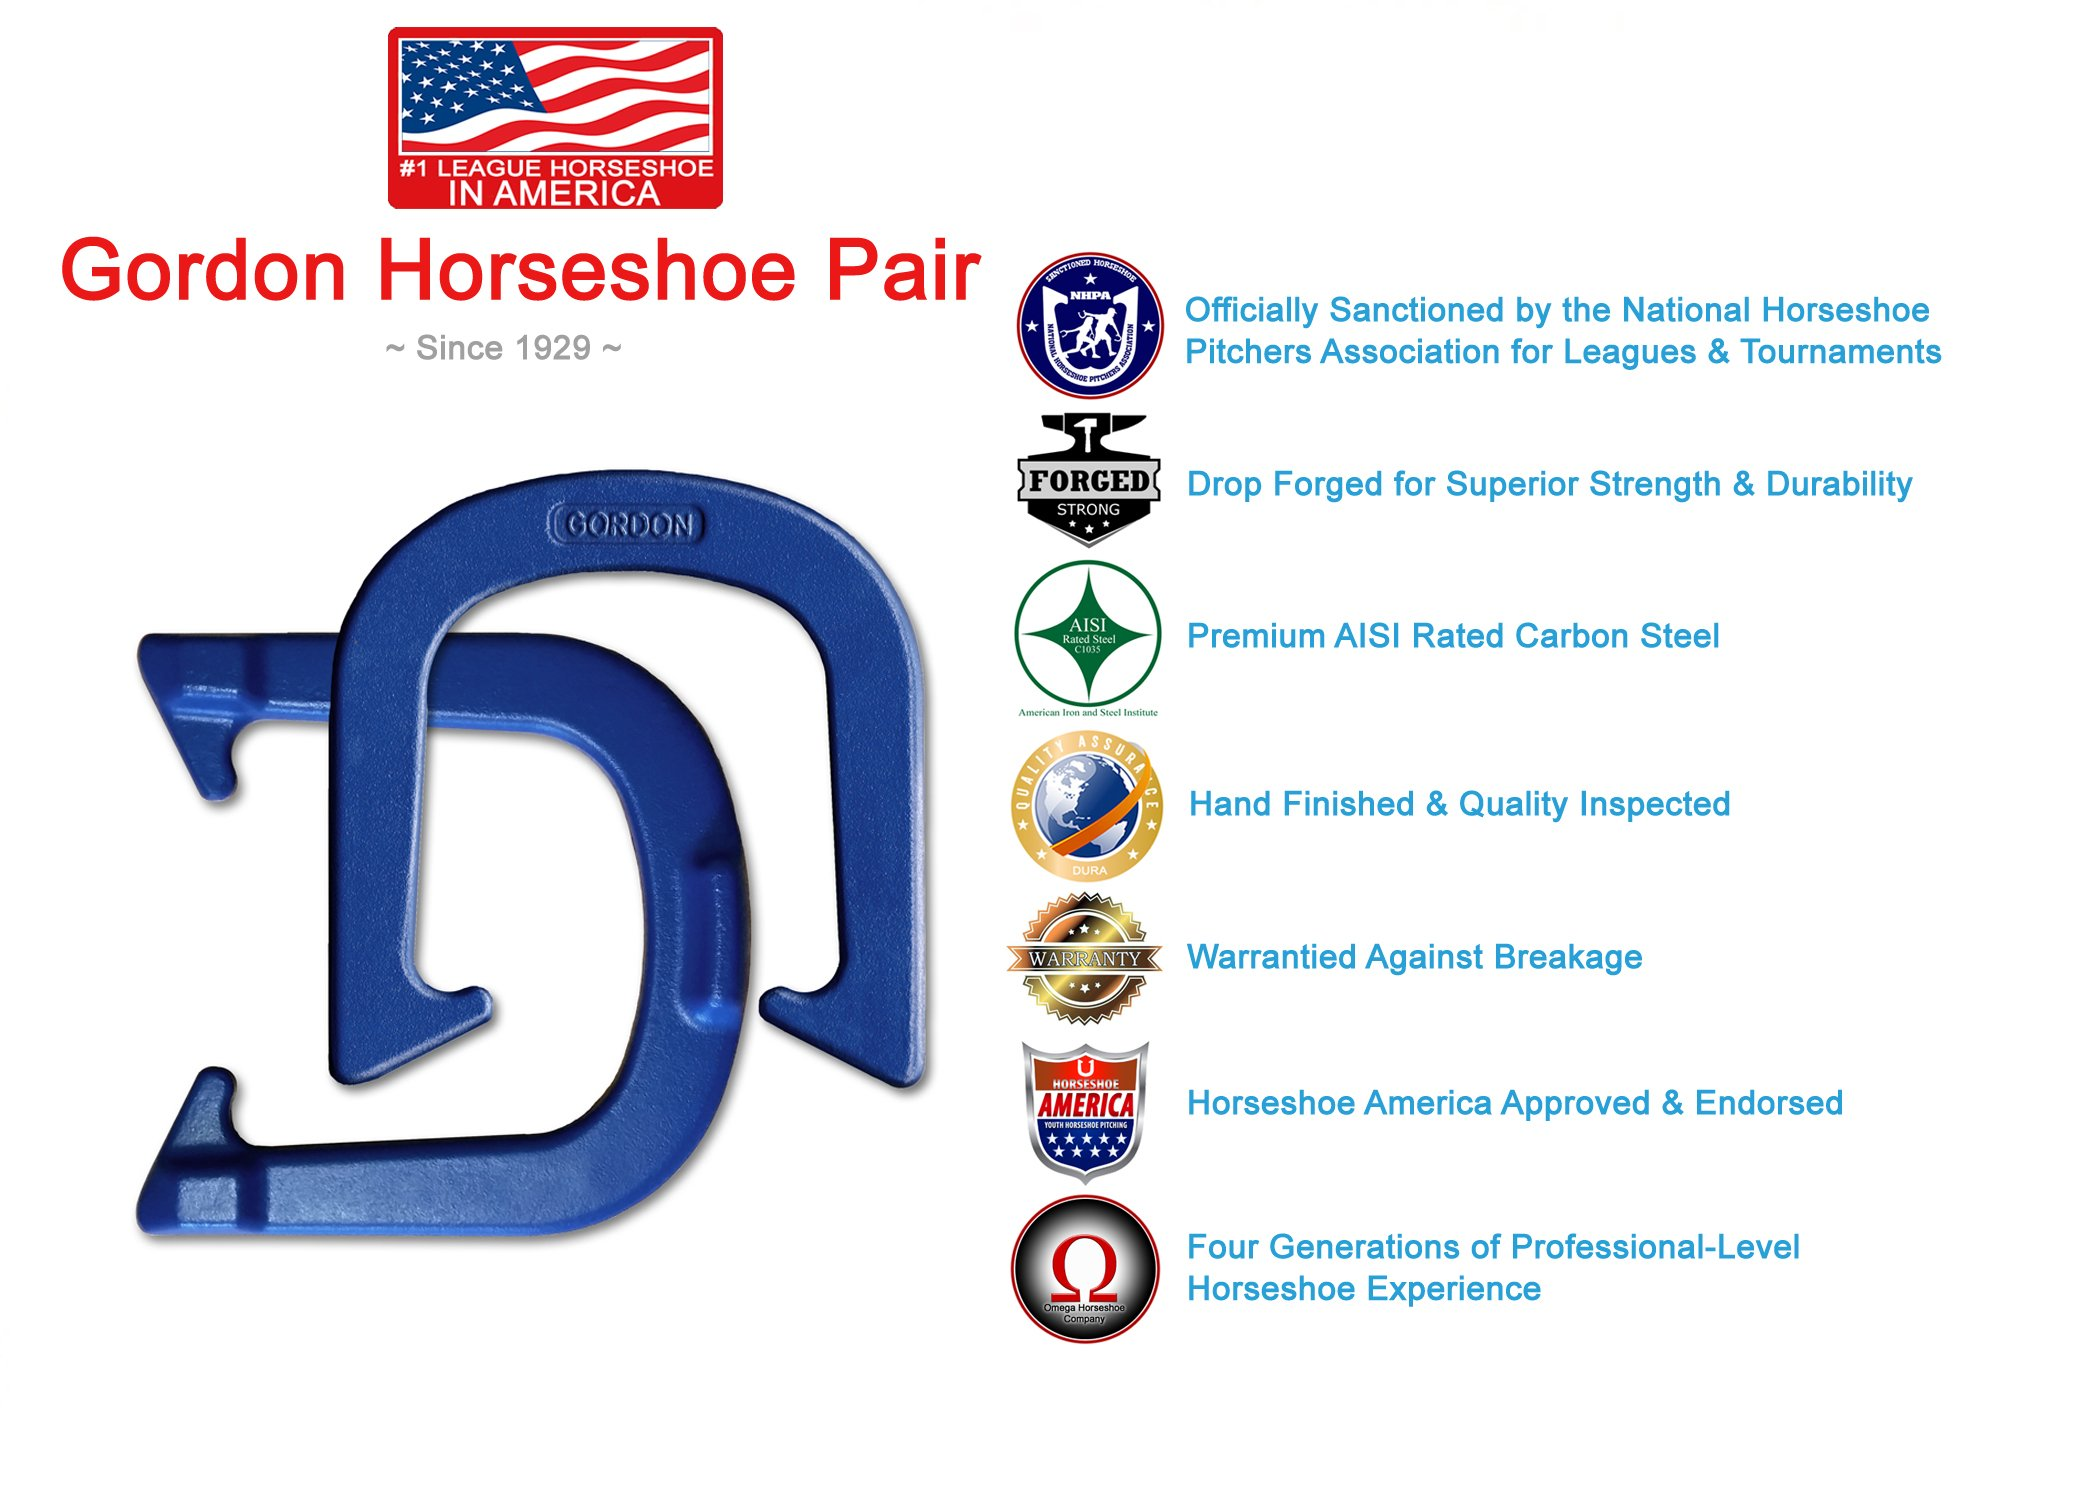 Gordon Professional Pitching Horseshoes - NHPA Sanctioned for Tournament Play - Drop Forged Construction - One Pair (2 Shoes) - Blue Finish - Medium Weight by Gordon Horseshoes